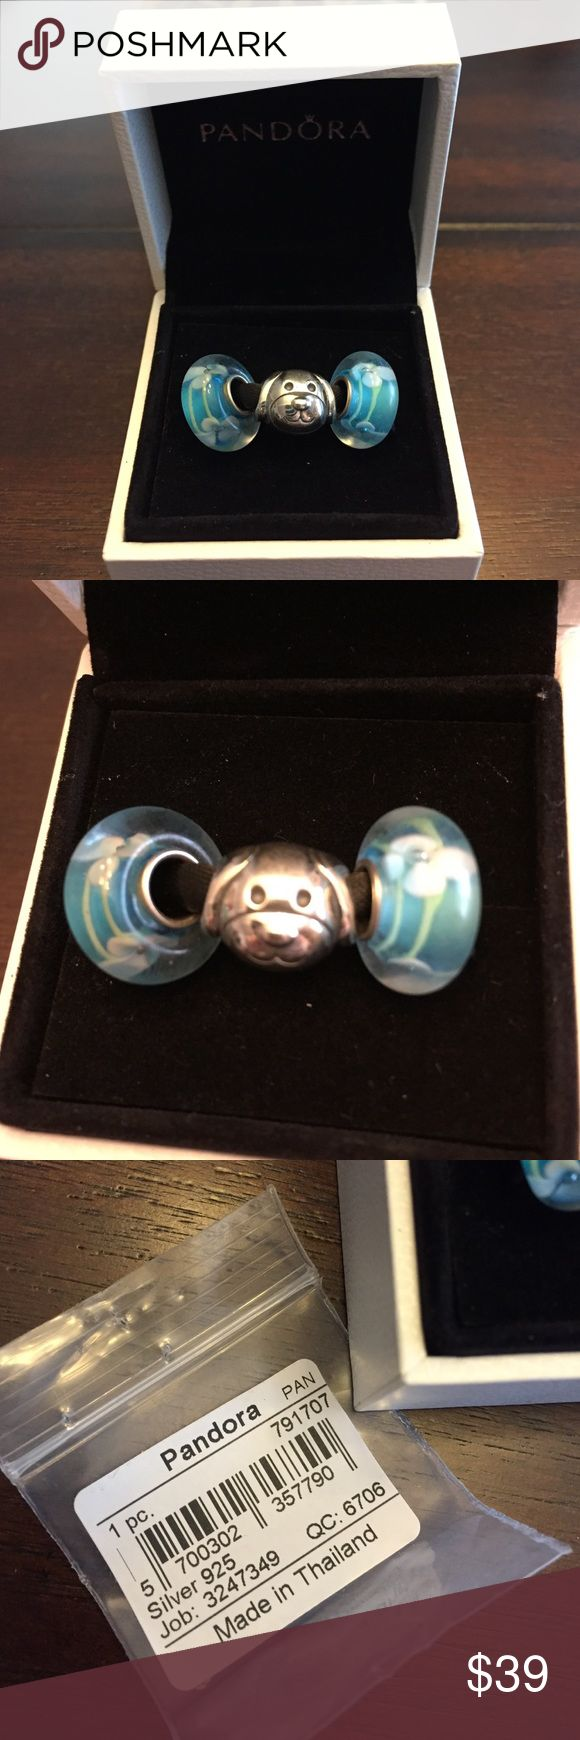 Pandora Dog Charm & 2 Non Brand Glass Beads! Brand new one Authentic Pandora devoted Dog Charm & 2 Non Brand Murano Glass teal blue flower beads! Cute set for your Pandora bracelet! No box (only used to display item.) Thank you! Pandora Jewelry Bracelets